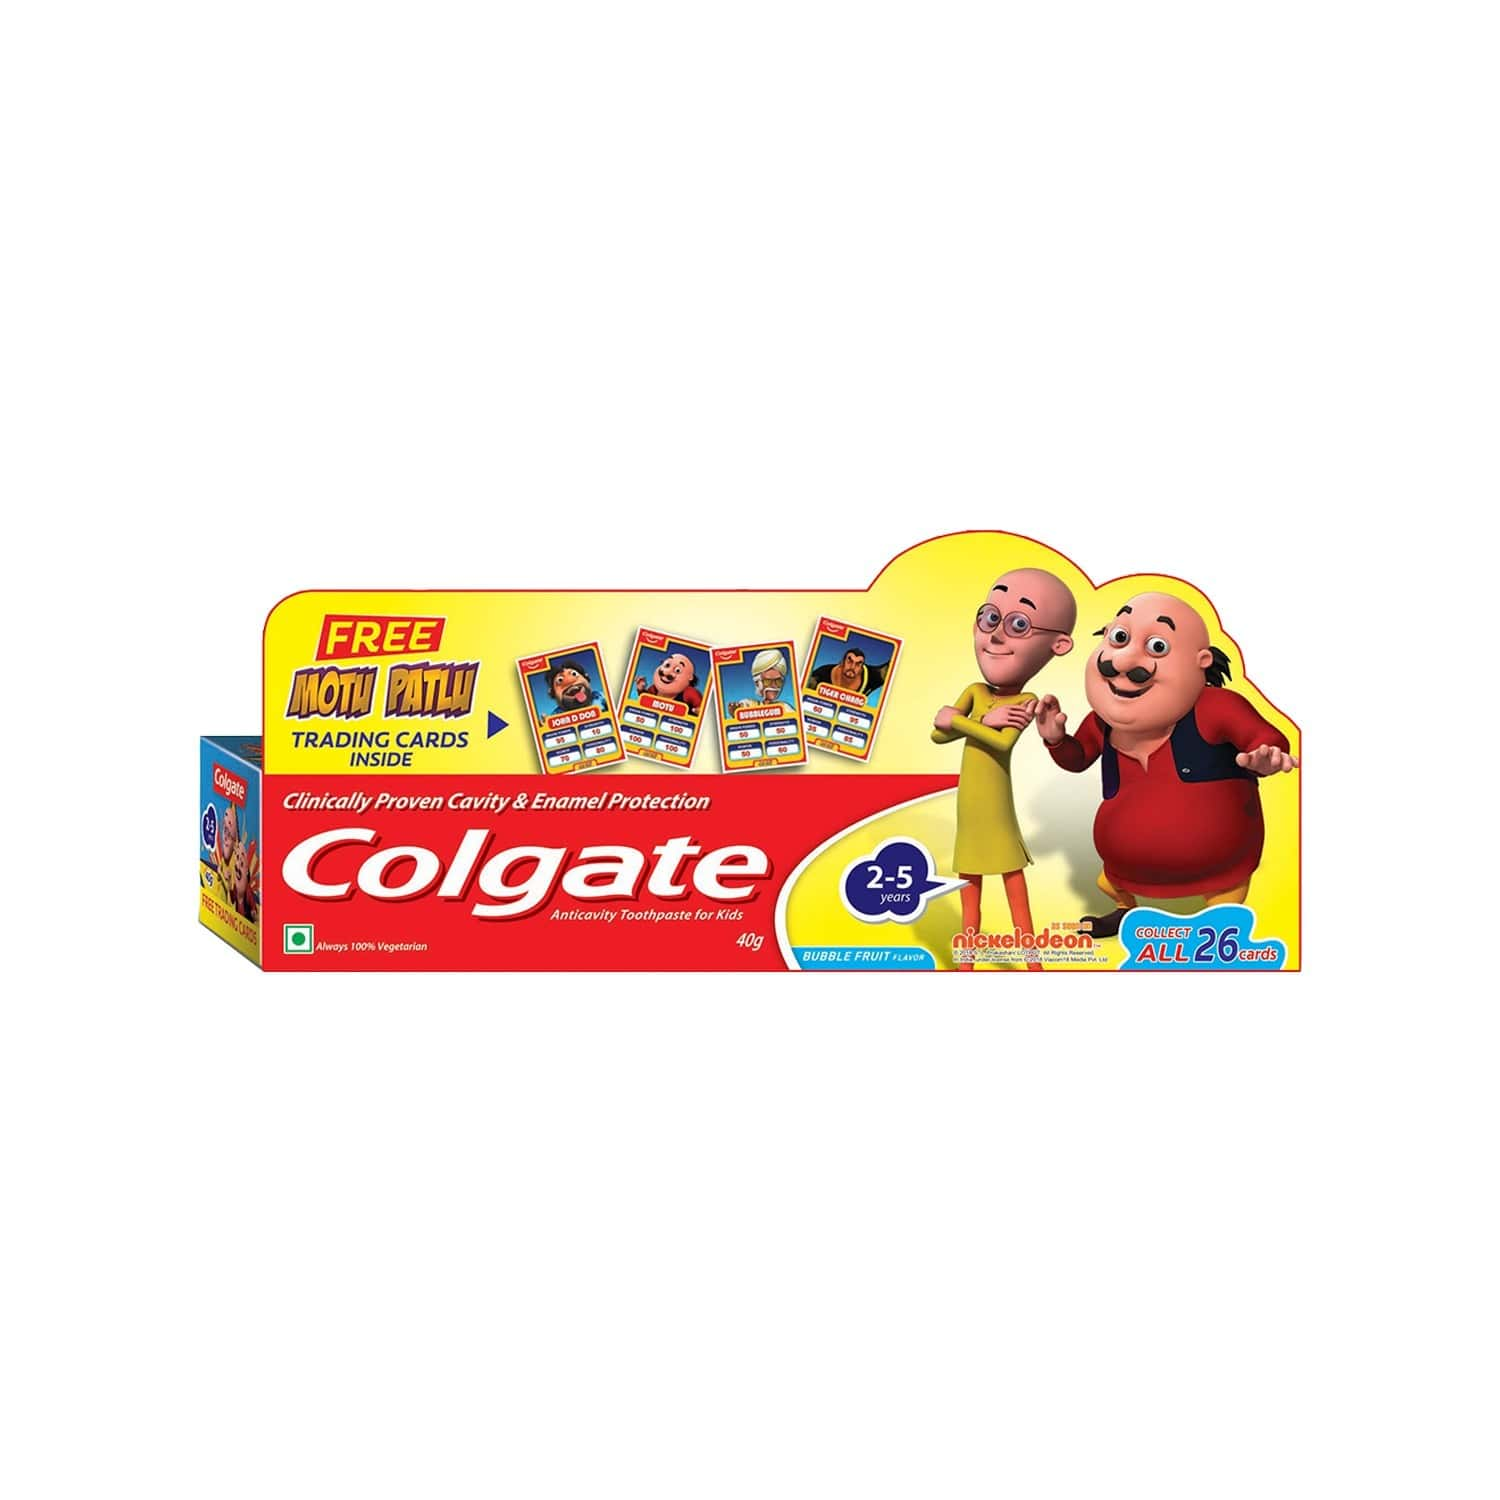 Colgate Anticavity Toothpaste For Kids (2-5 Years), Bubble Fruit Flavour - 40g (with Free Motu Patlu Trading Cards)